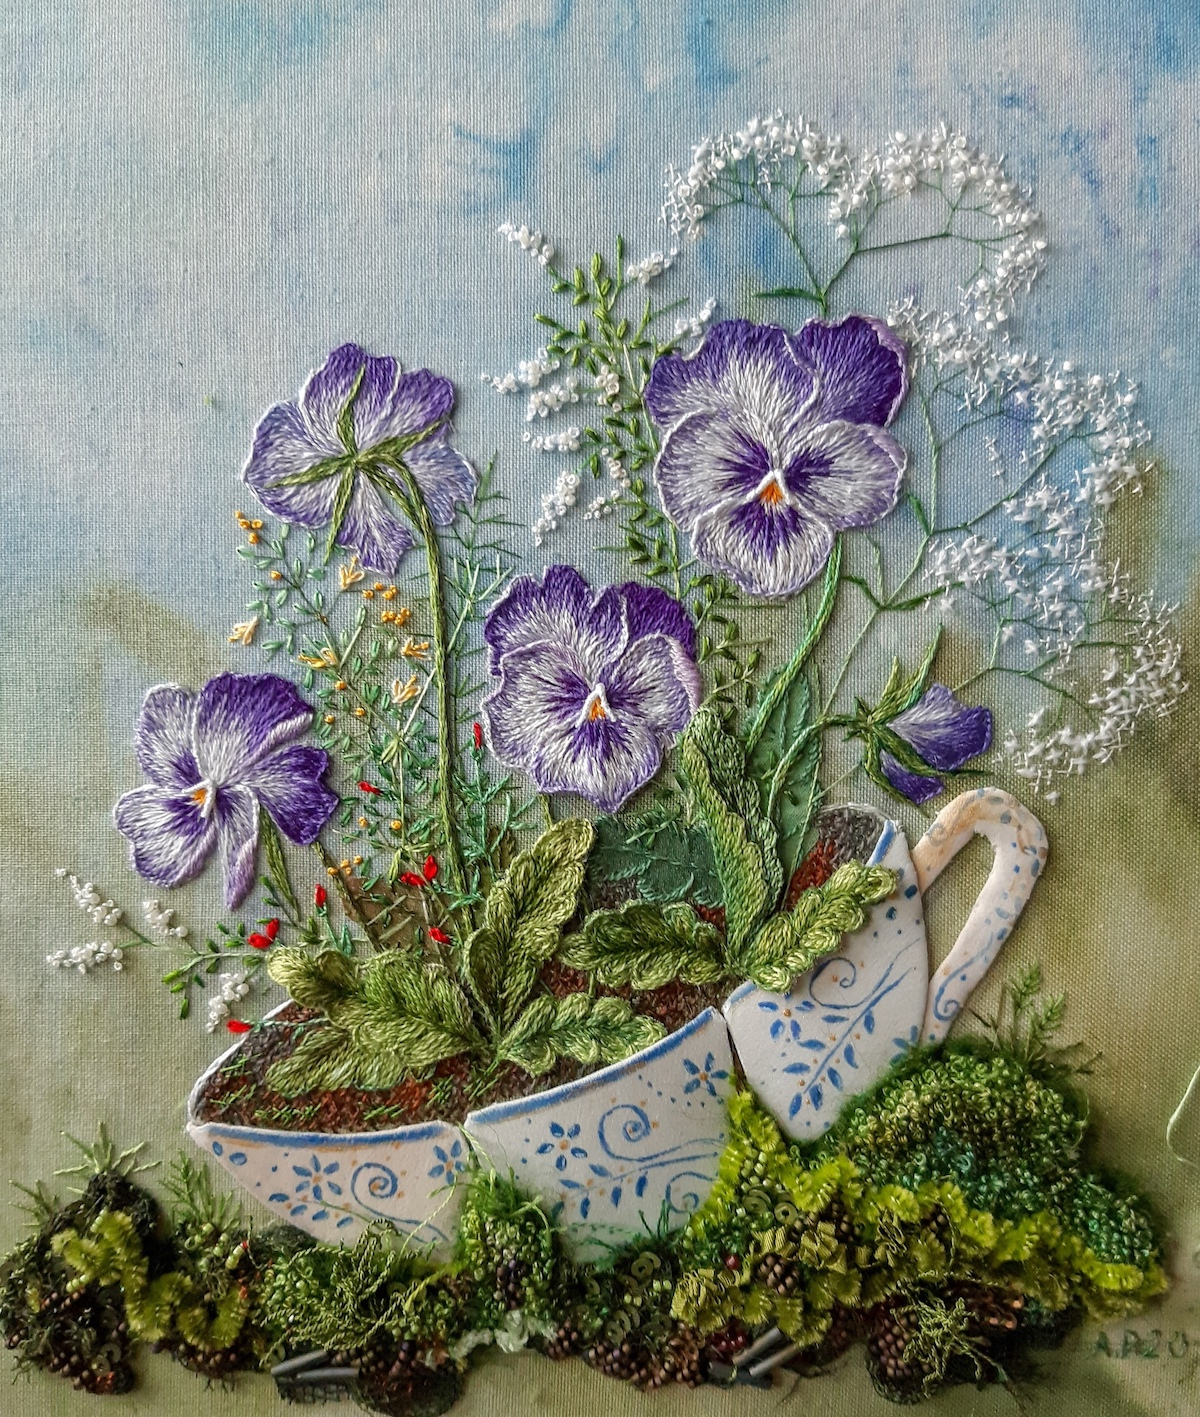 Rosa Andreeva Embroidered Flowers Sprouting From Teacup